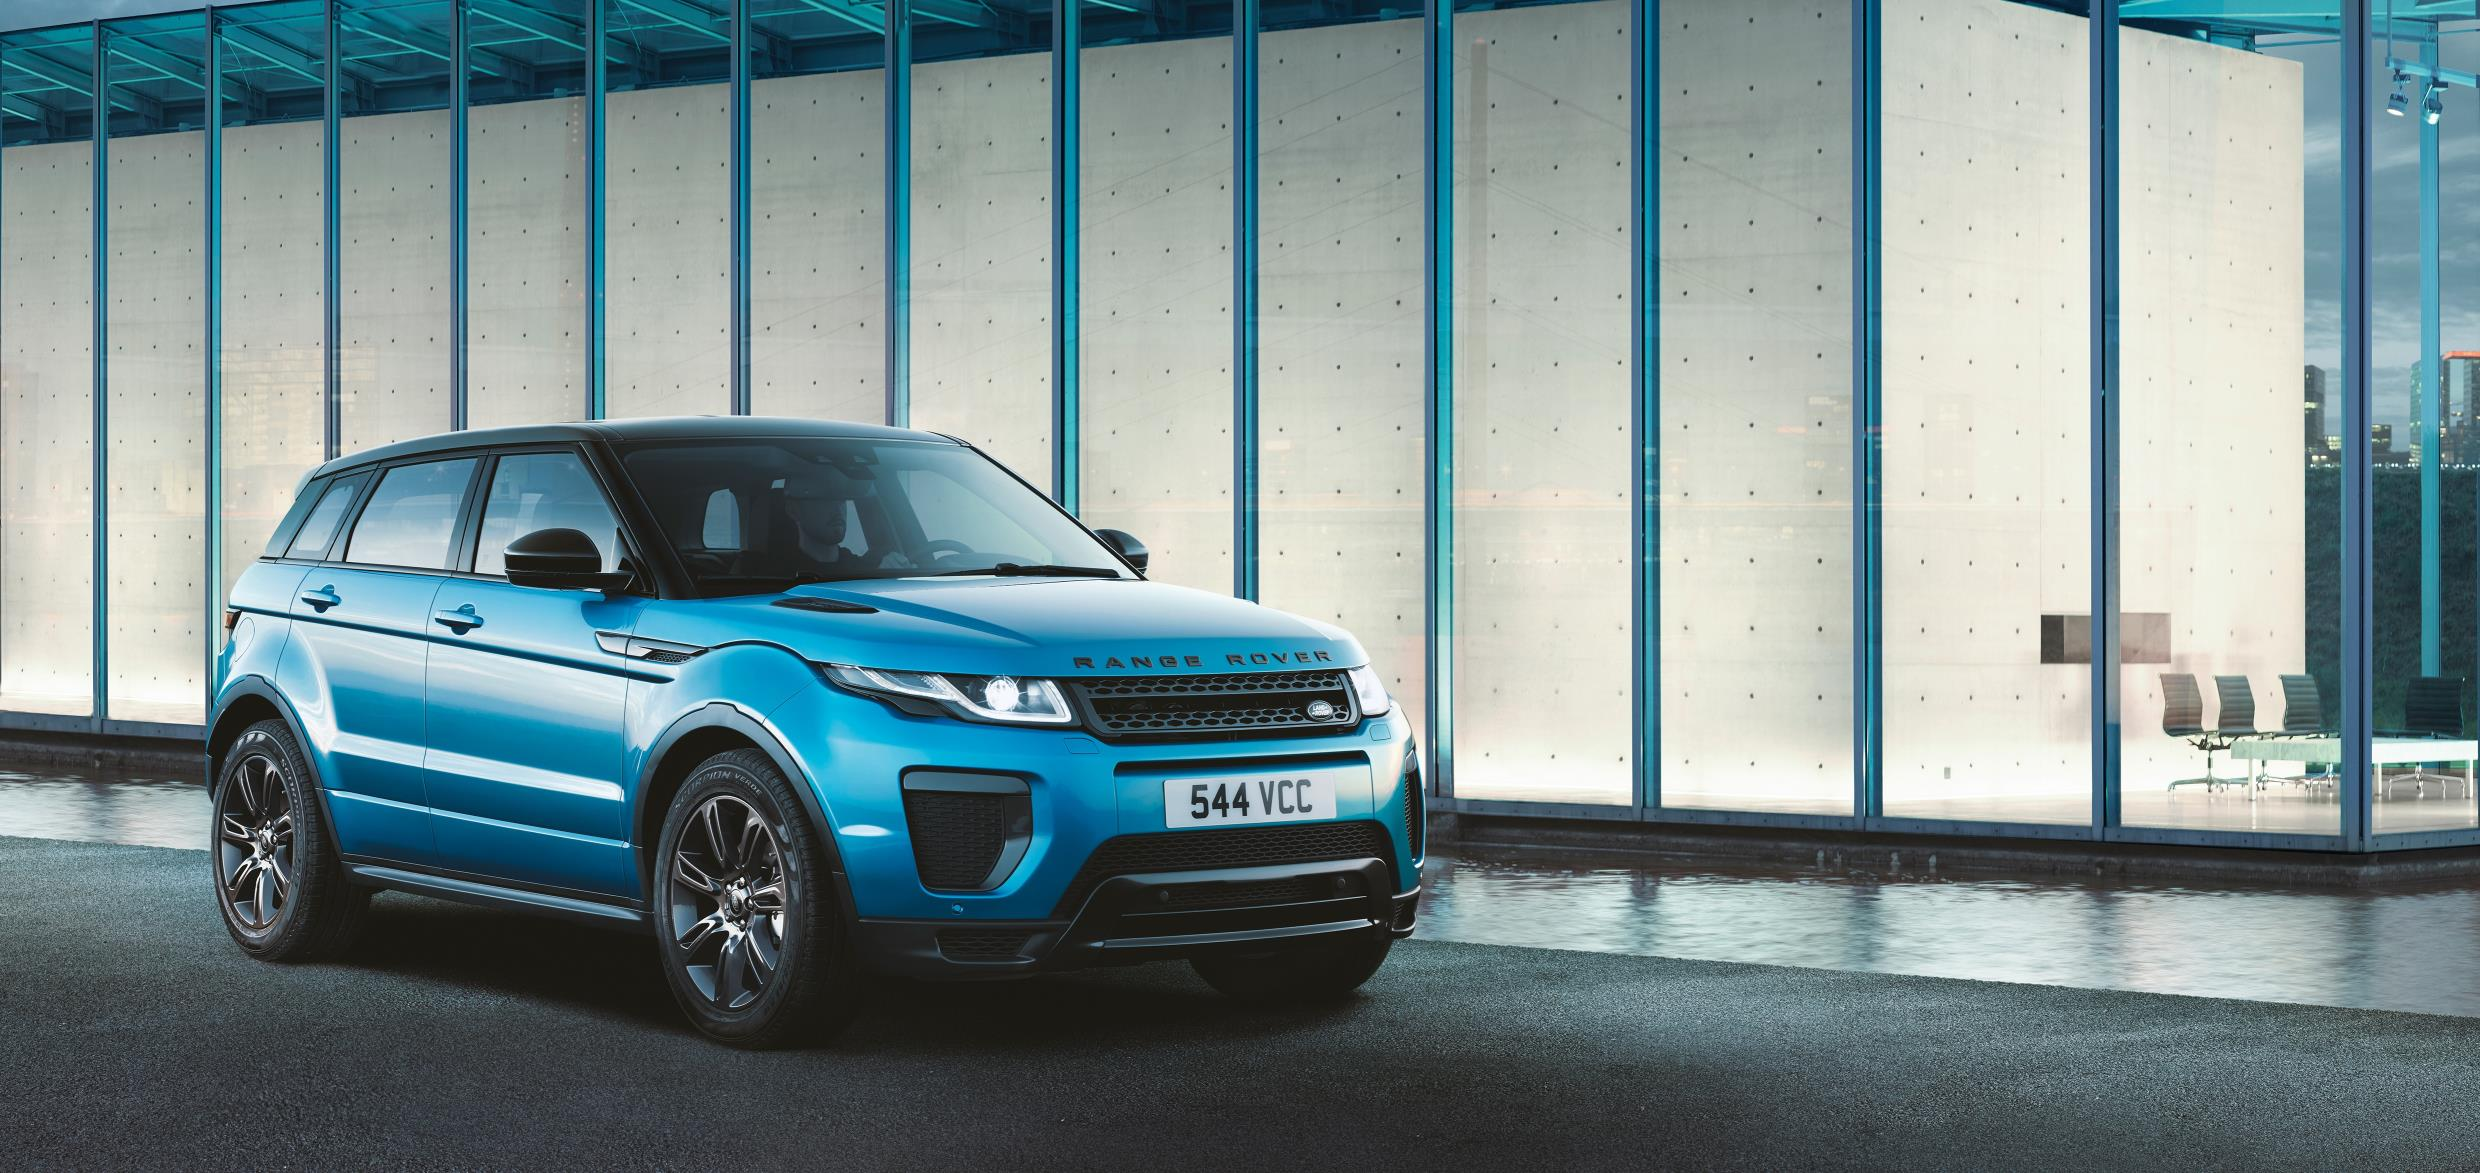 The Evoque is a stylish crossover option